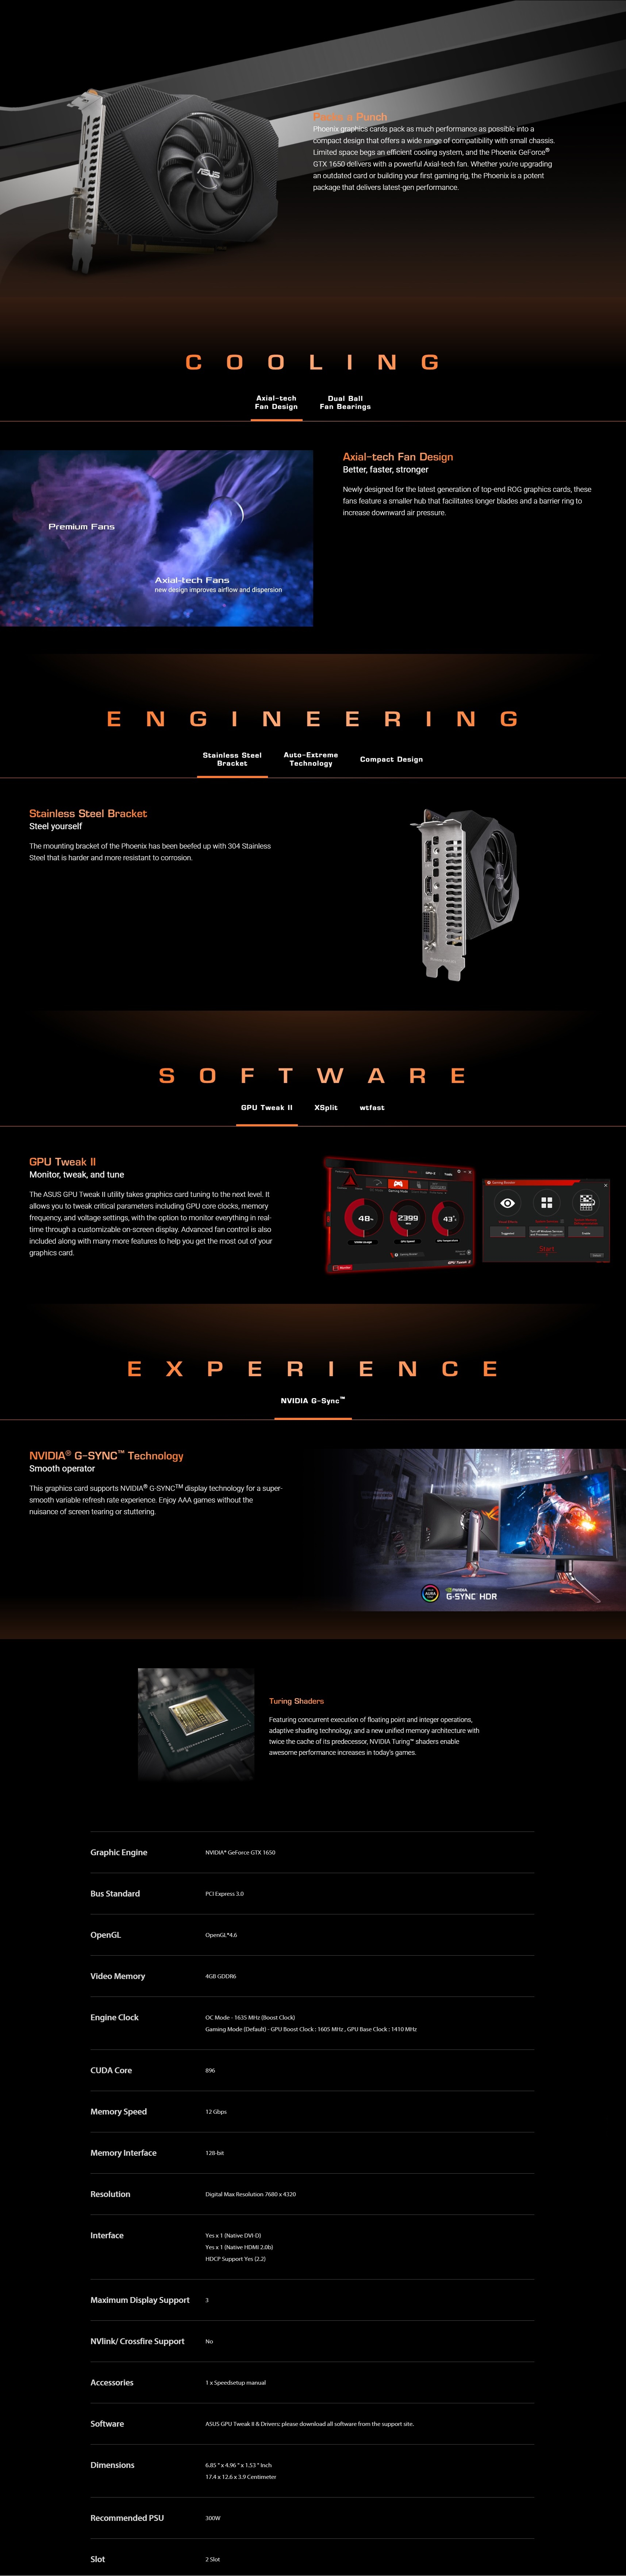 A large marketing image providing additional information about the product ASUS GeForce GTX 1650 Phoenix 4GB GDDR6 - Additional alt info not provided